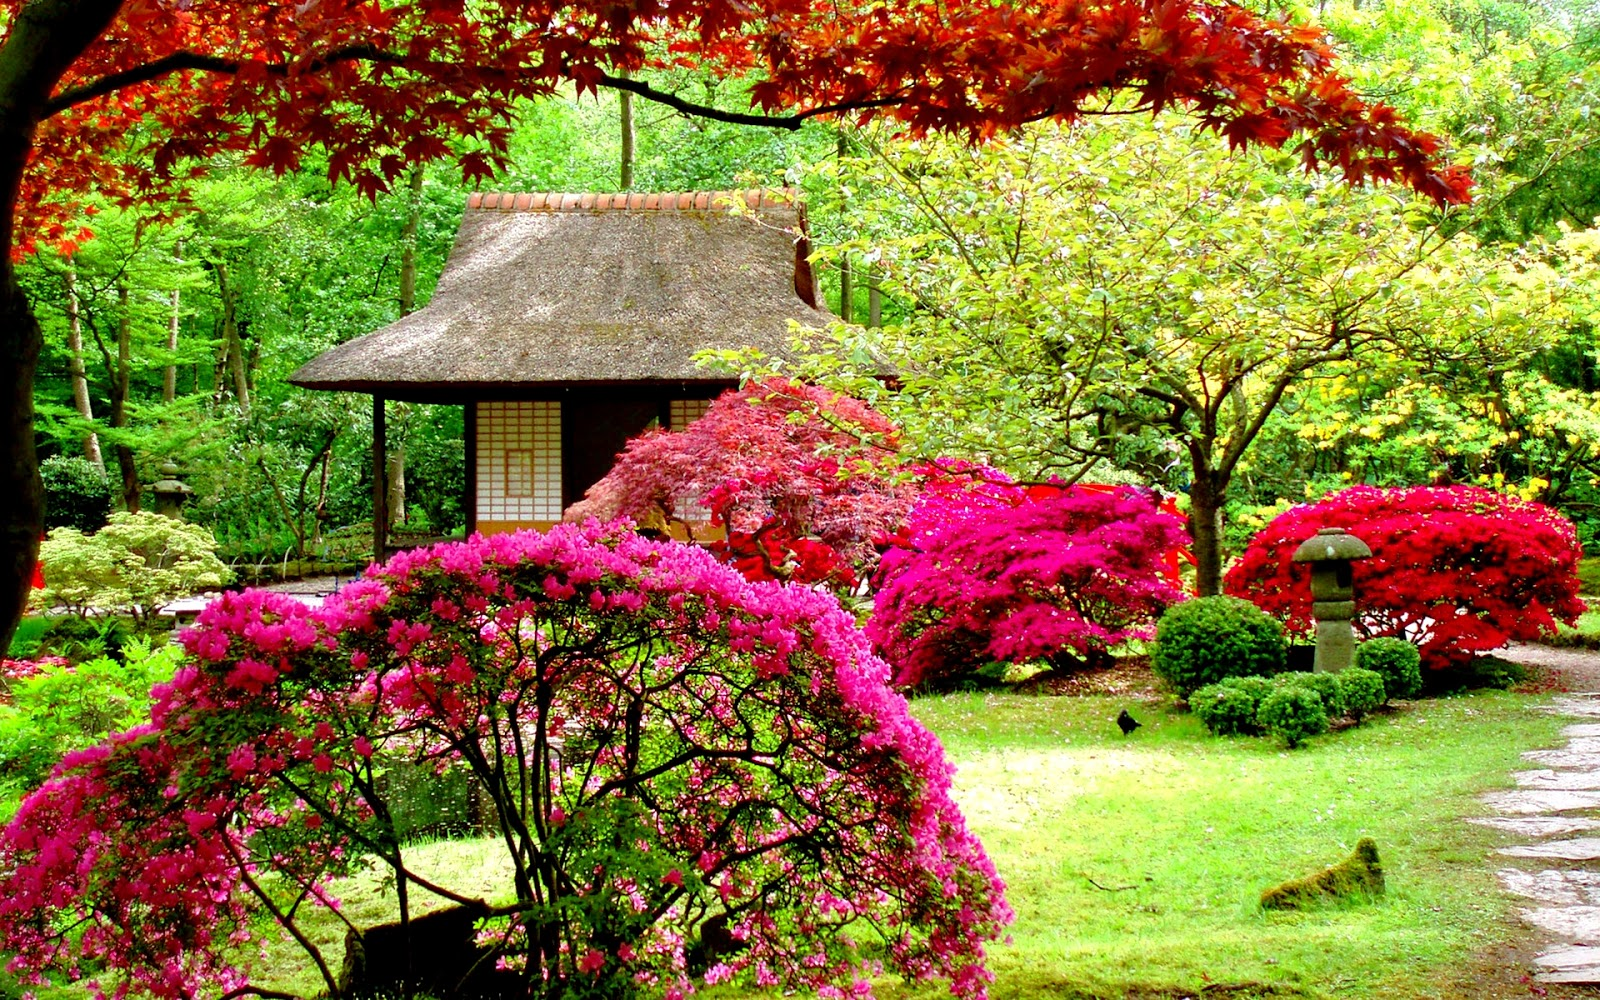 Gardens Hd Wallpapers Wallpaper202